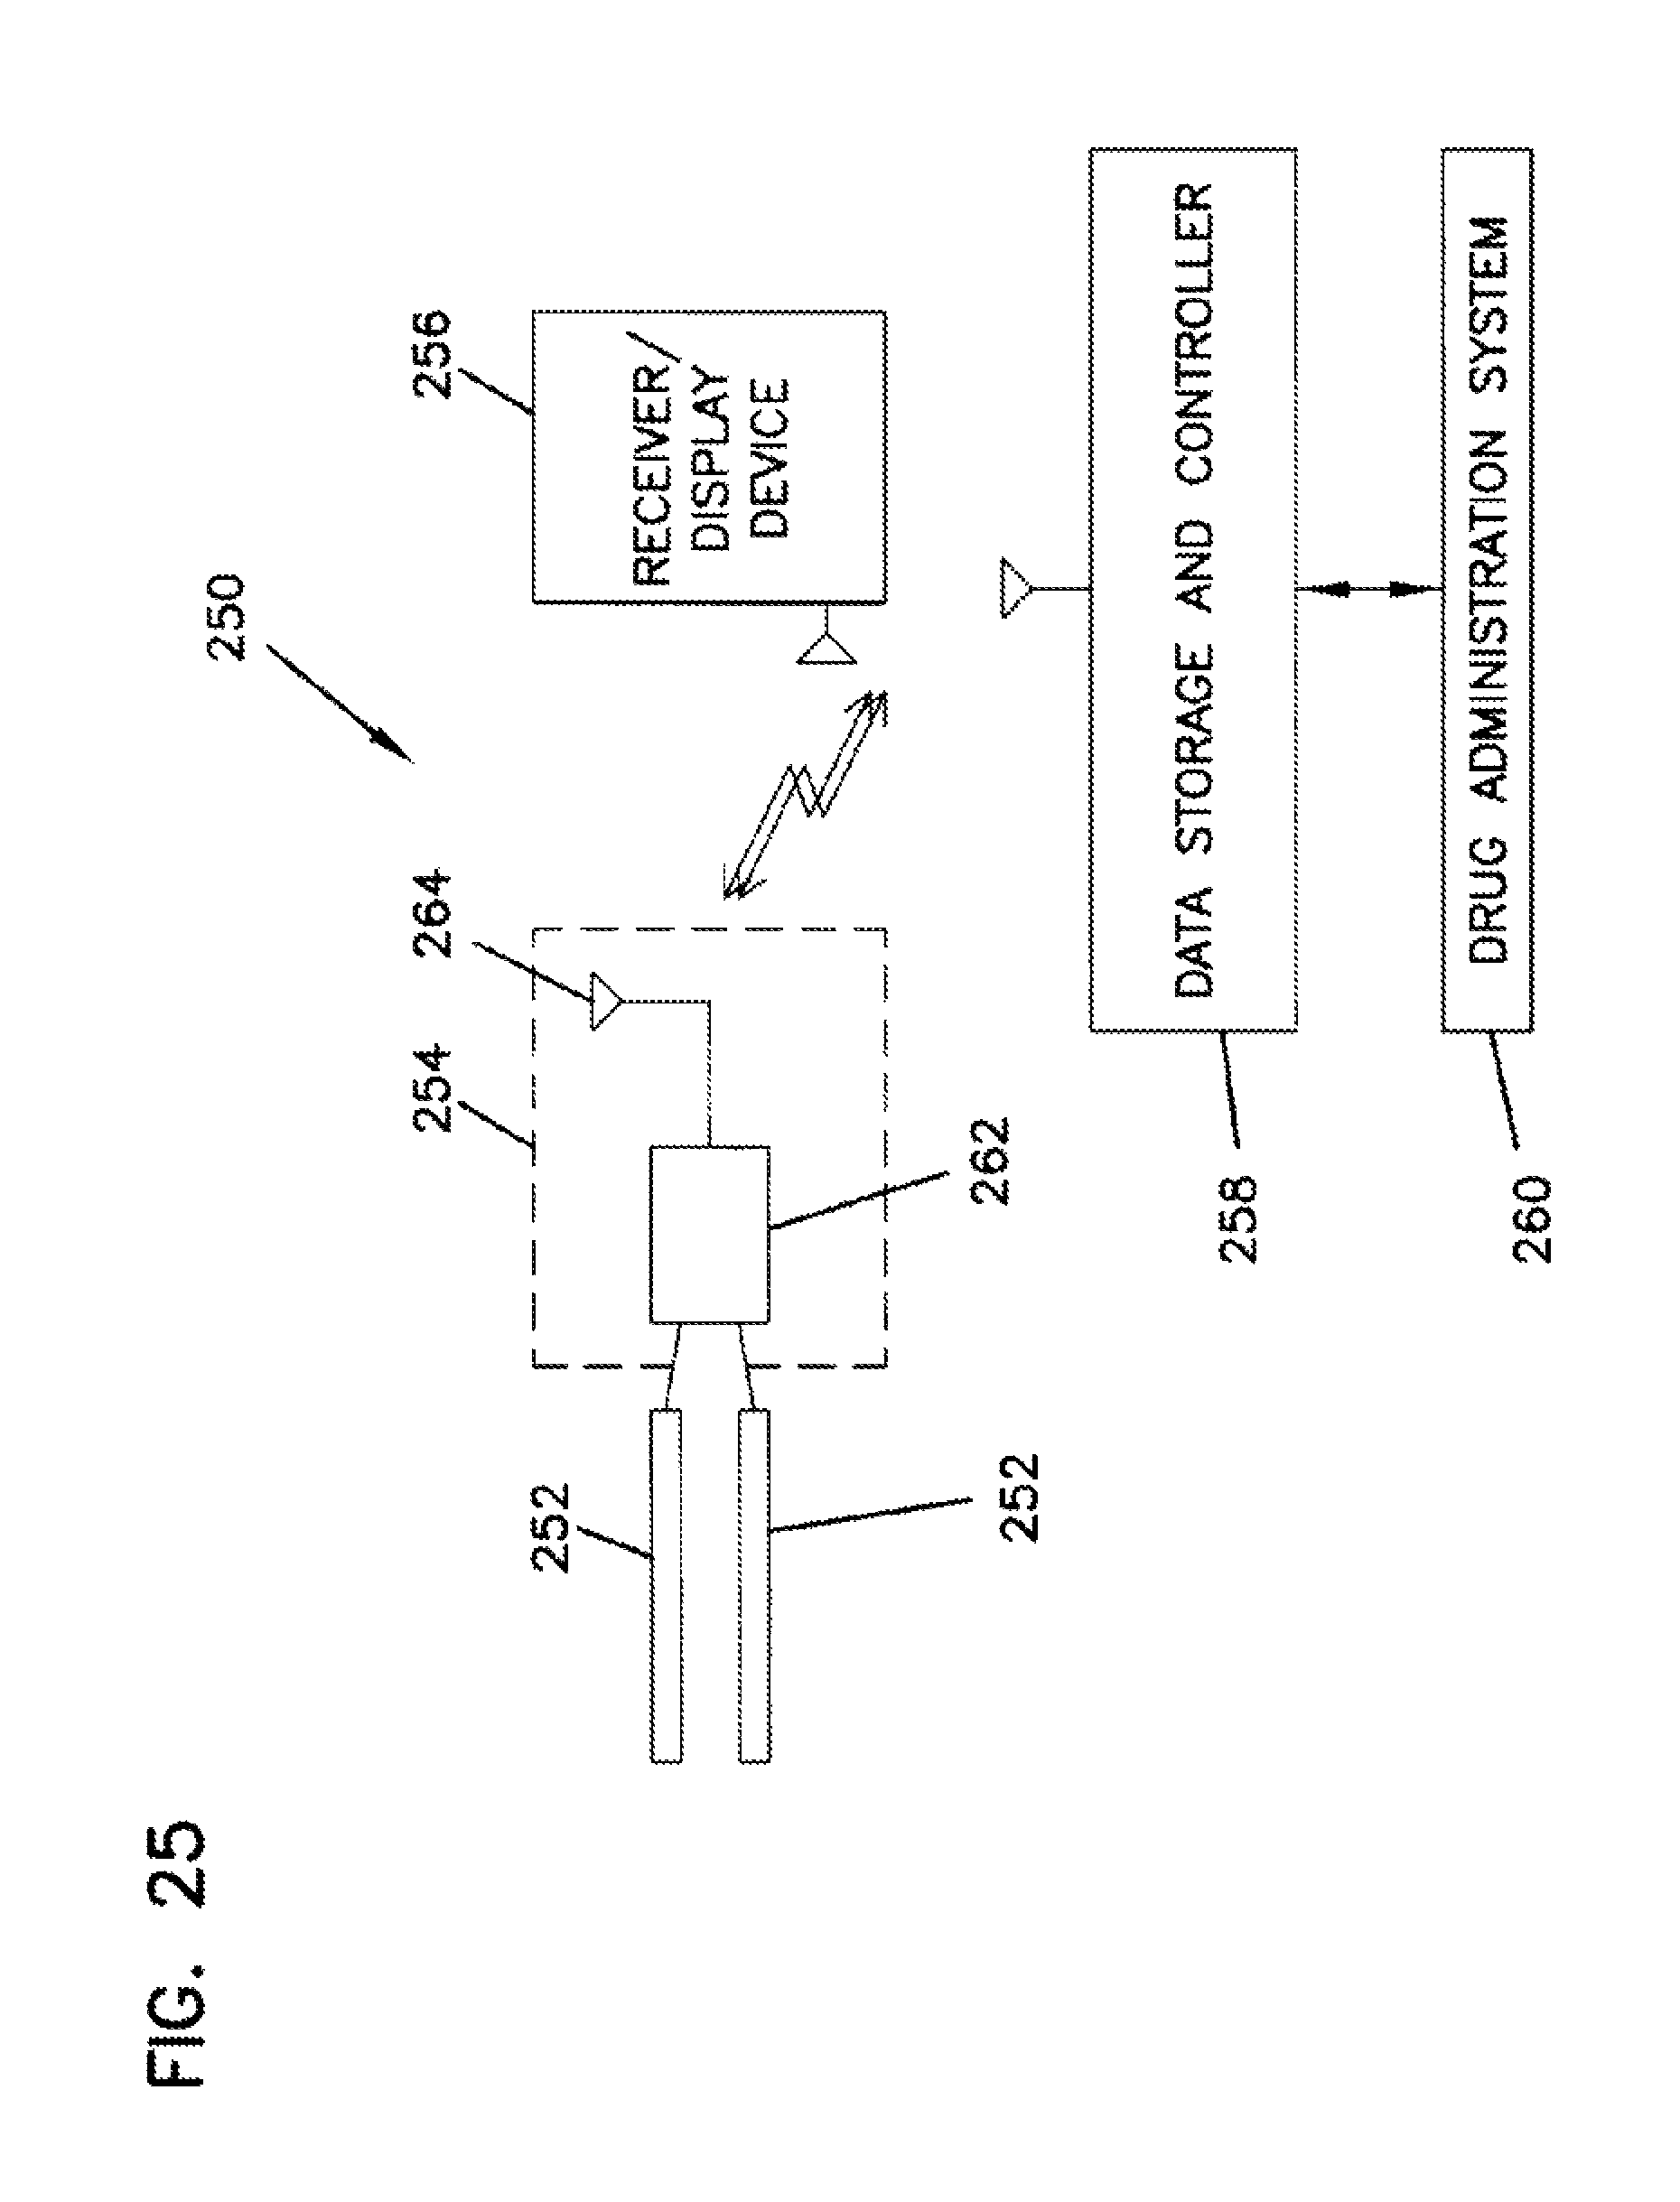 Us8231532b2 Analyte Monitoring Device And Methods Of Use Google Far West Cathodic Rectifier Wiring Diagram Patents